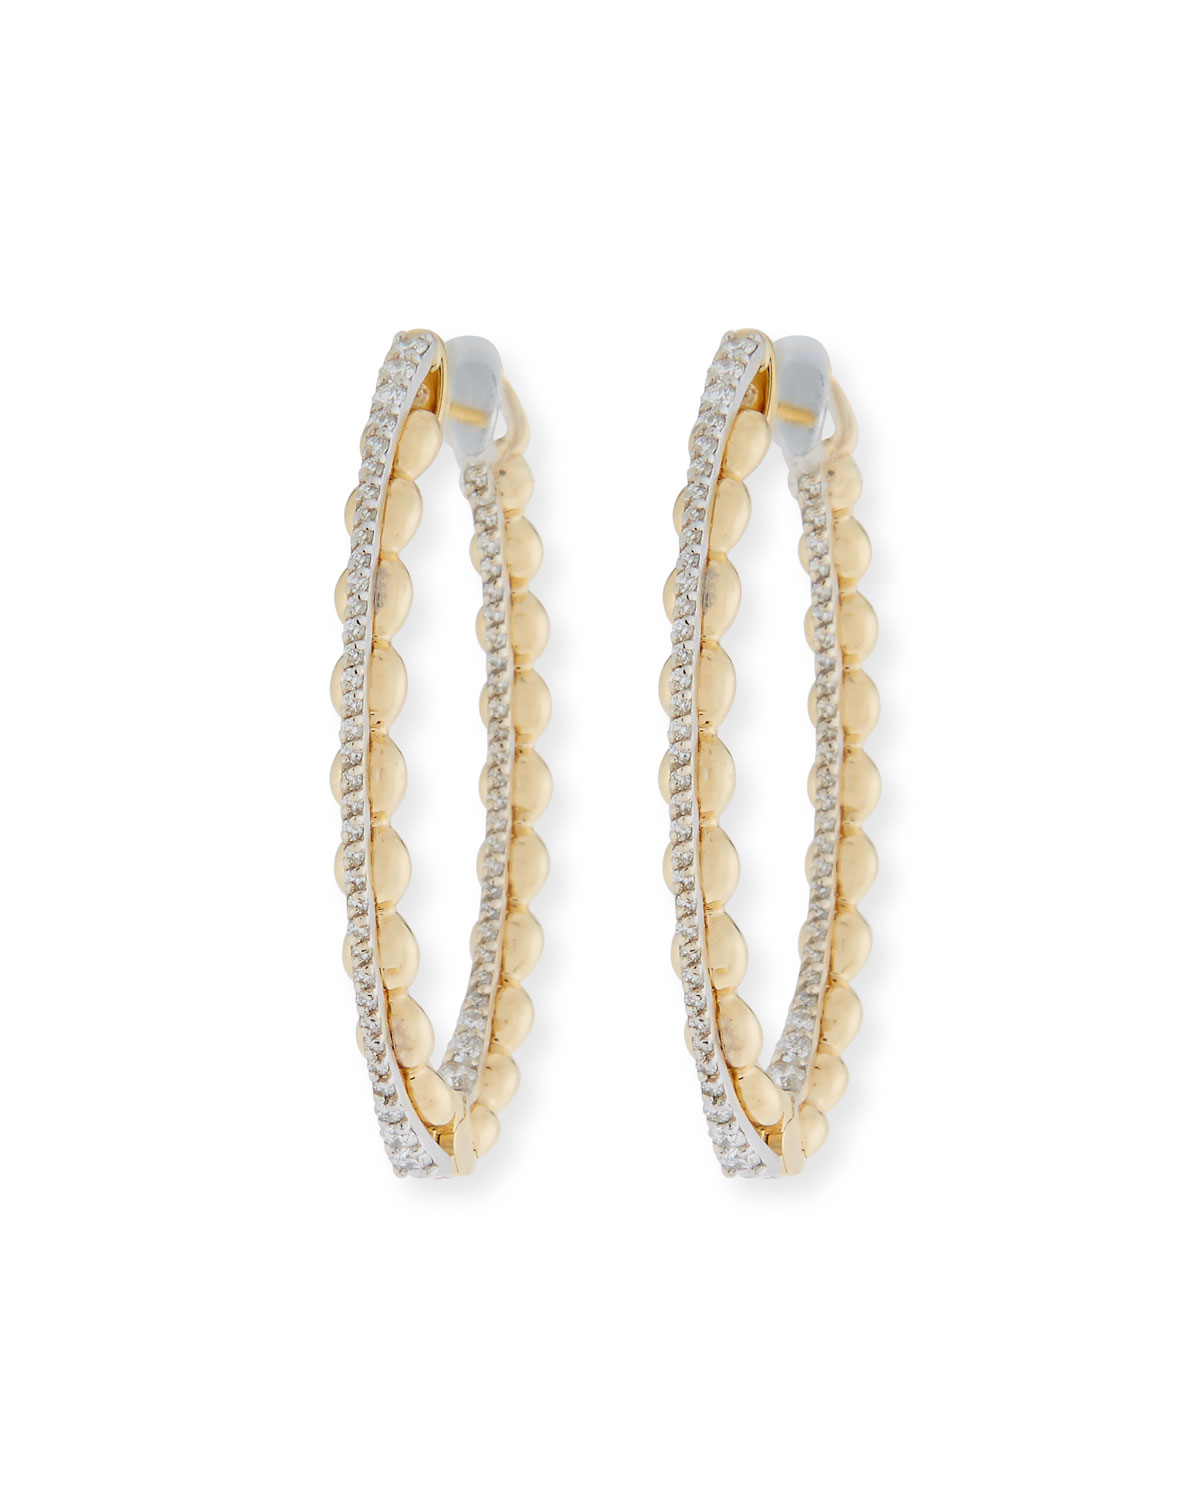 Miseno Marea 18k Gold Two-Tone Medium Diamond Hoop Earrings